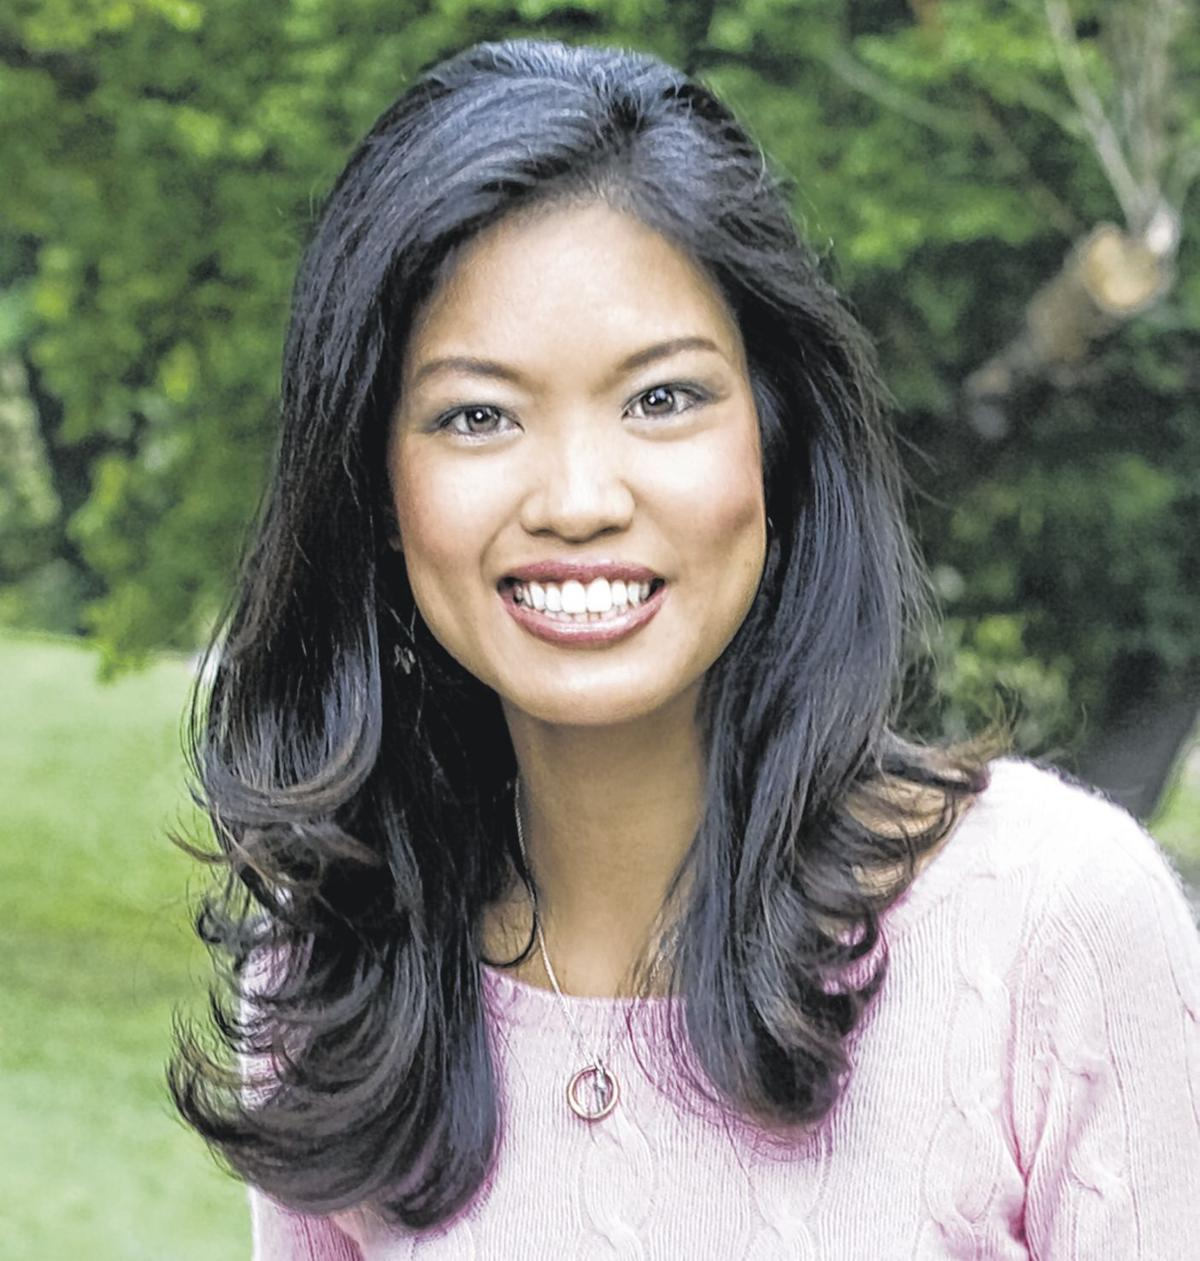 Michelle Malkin changed more than her scenery in moving to Colorado Springs